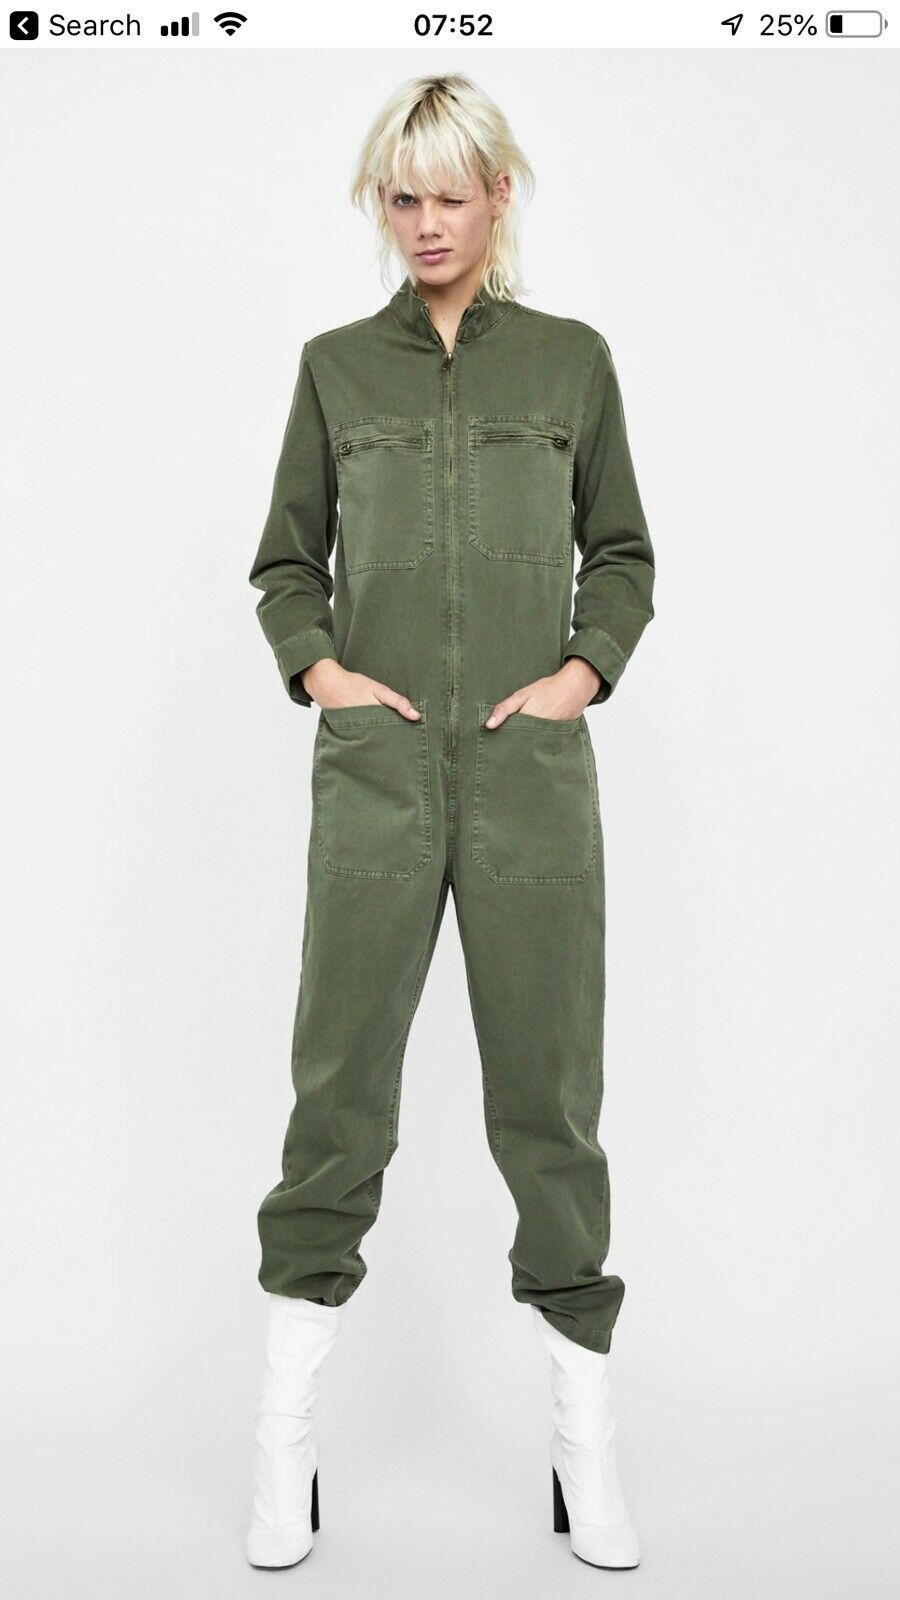 d8e5737587c8 Zara Worker jumpsuite Size S nnvbwb3928-Jumpsuits & Playsuits - www ...